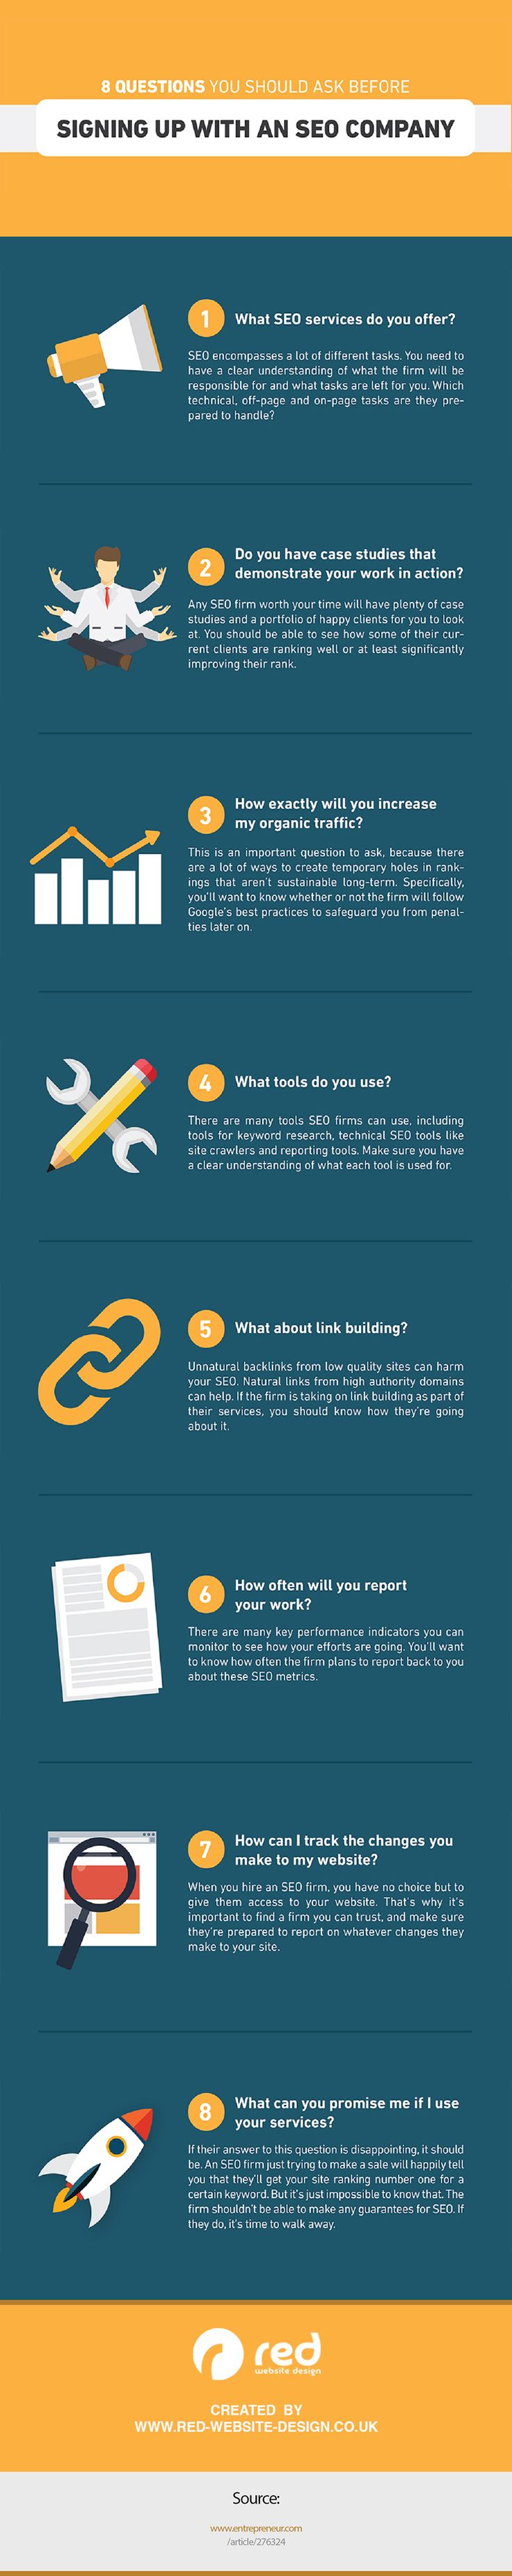 8 Questions To Ask Before Using An SEO Company - If you are thinking about using an SEO company to help optimize your website you need to ask them these 8 questions before you start the collaboration. - #infographic